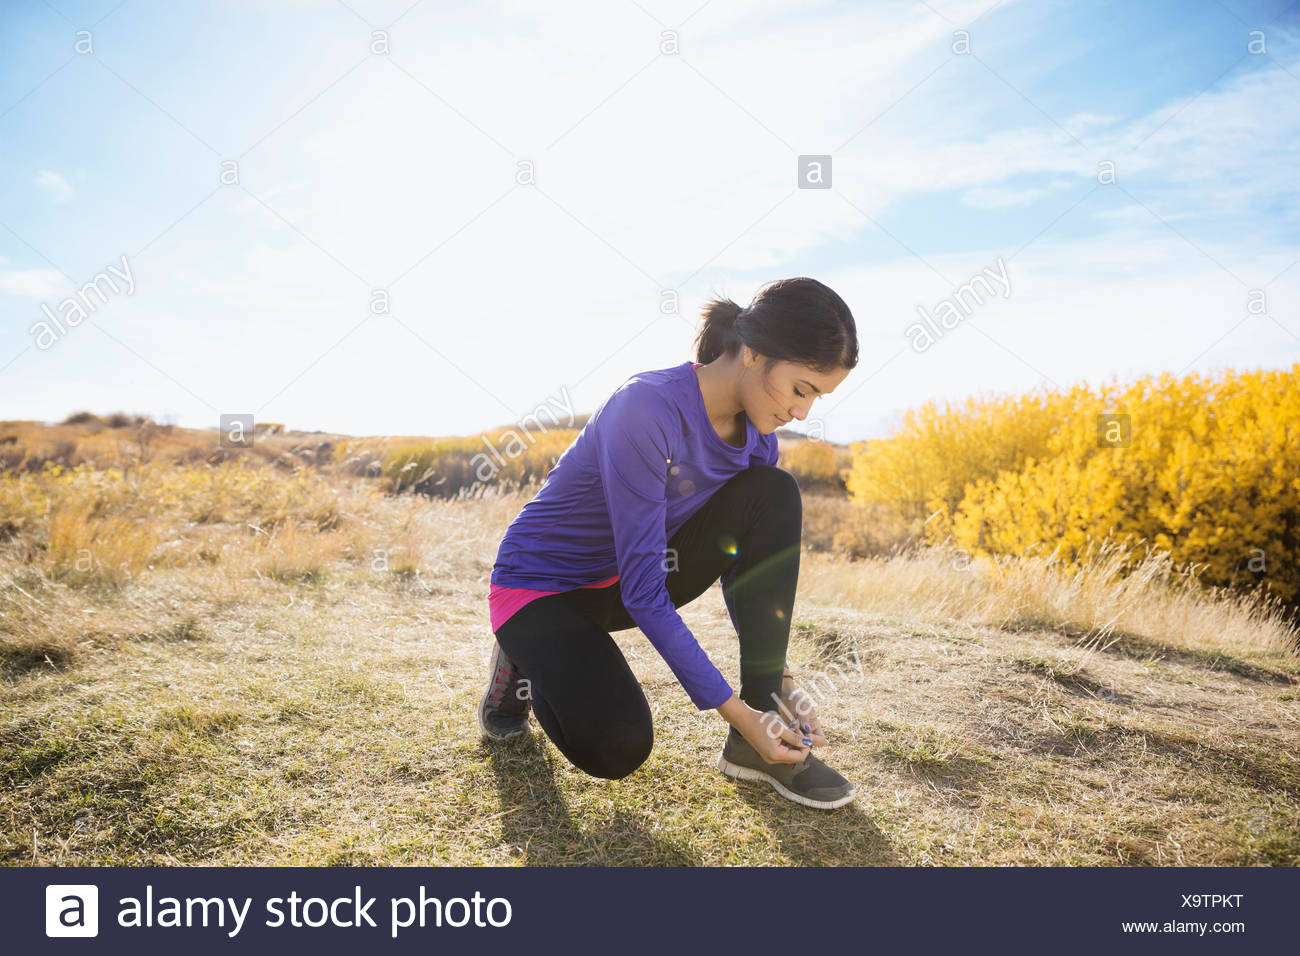 Runner tying shoe in sunny rural field - Stock Image